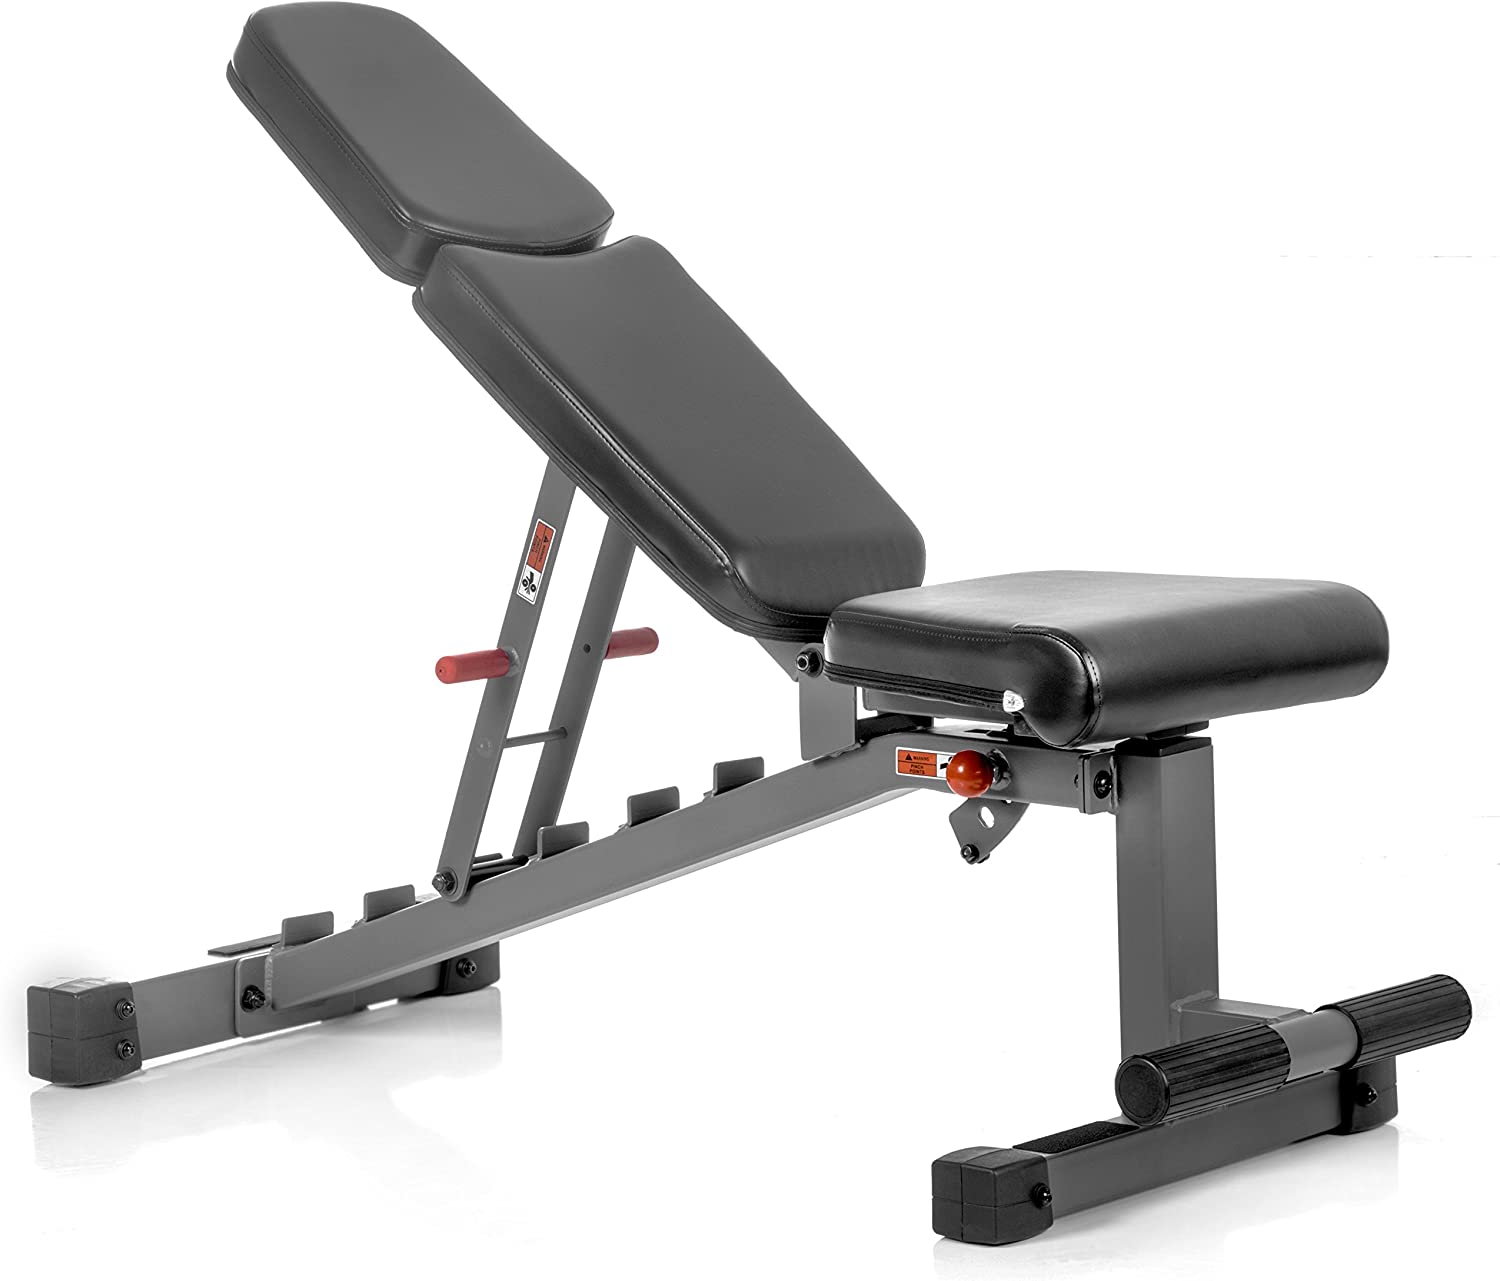 XMark Adjustable FID Weight Bench, 11-Gauge, 1500 lb. Capacity, 7 Back Pad Positions from Decline to Full Military Press Position, Ergonomic 3 Position Adjustable Seat, XM-7630 Gray or White